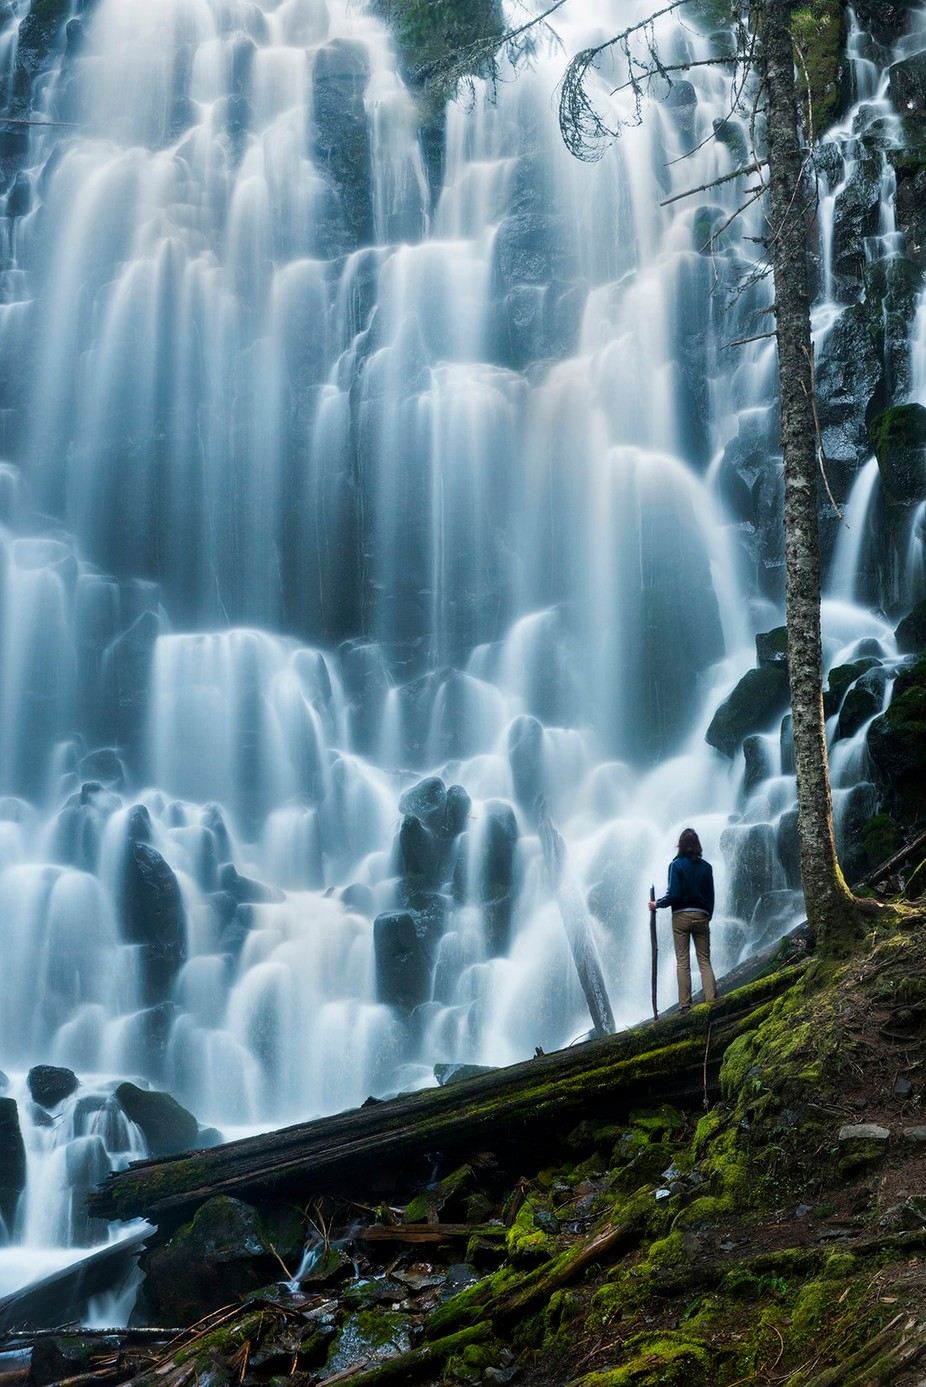 Amazing Falls by intheloupe - People And Waterfalls Photo Contest